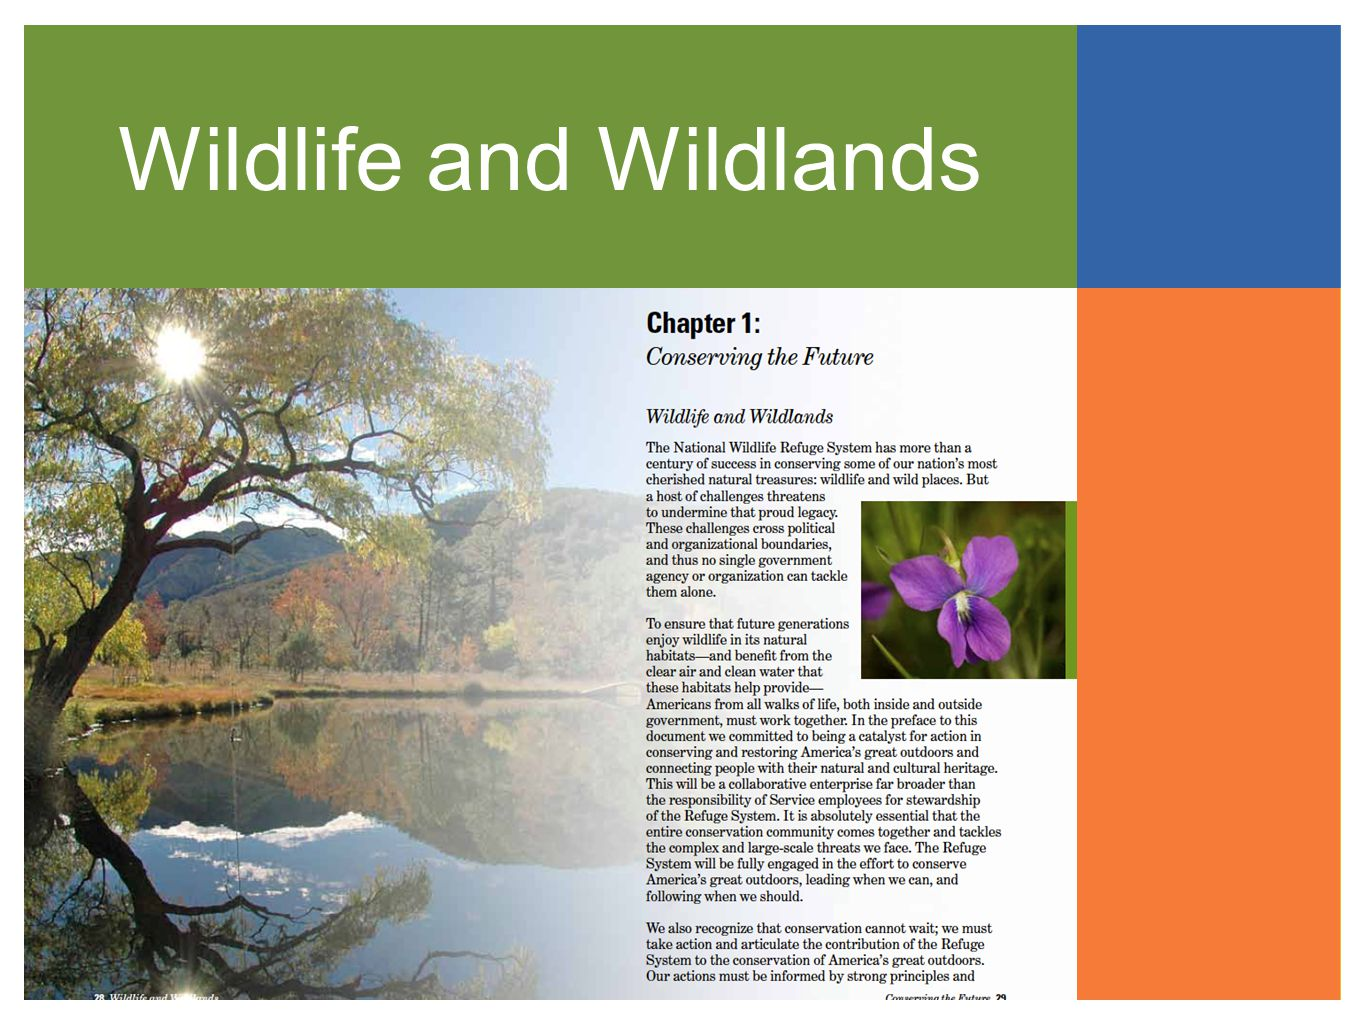 Wildlife and Wildlands